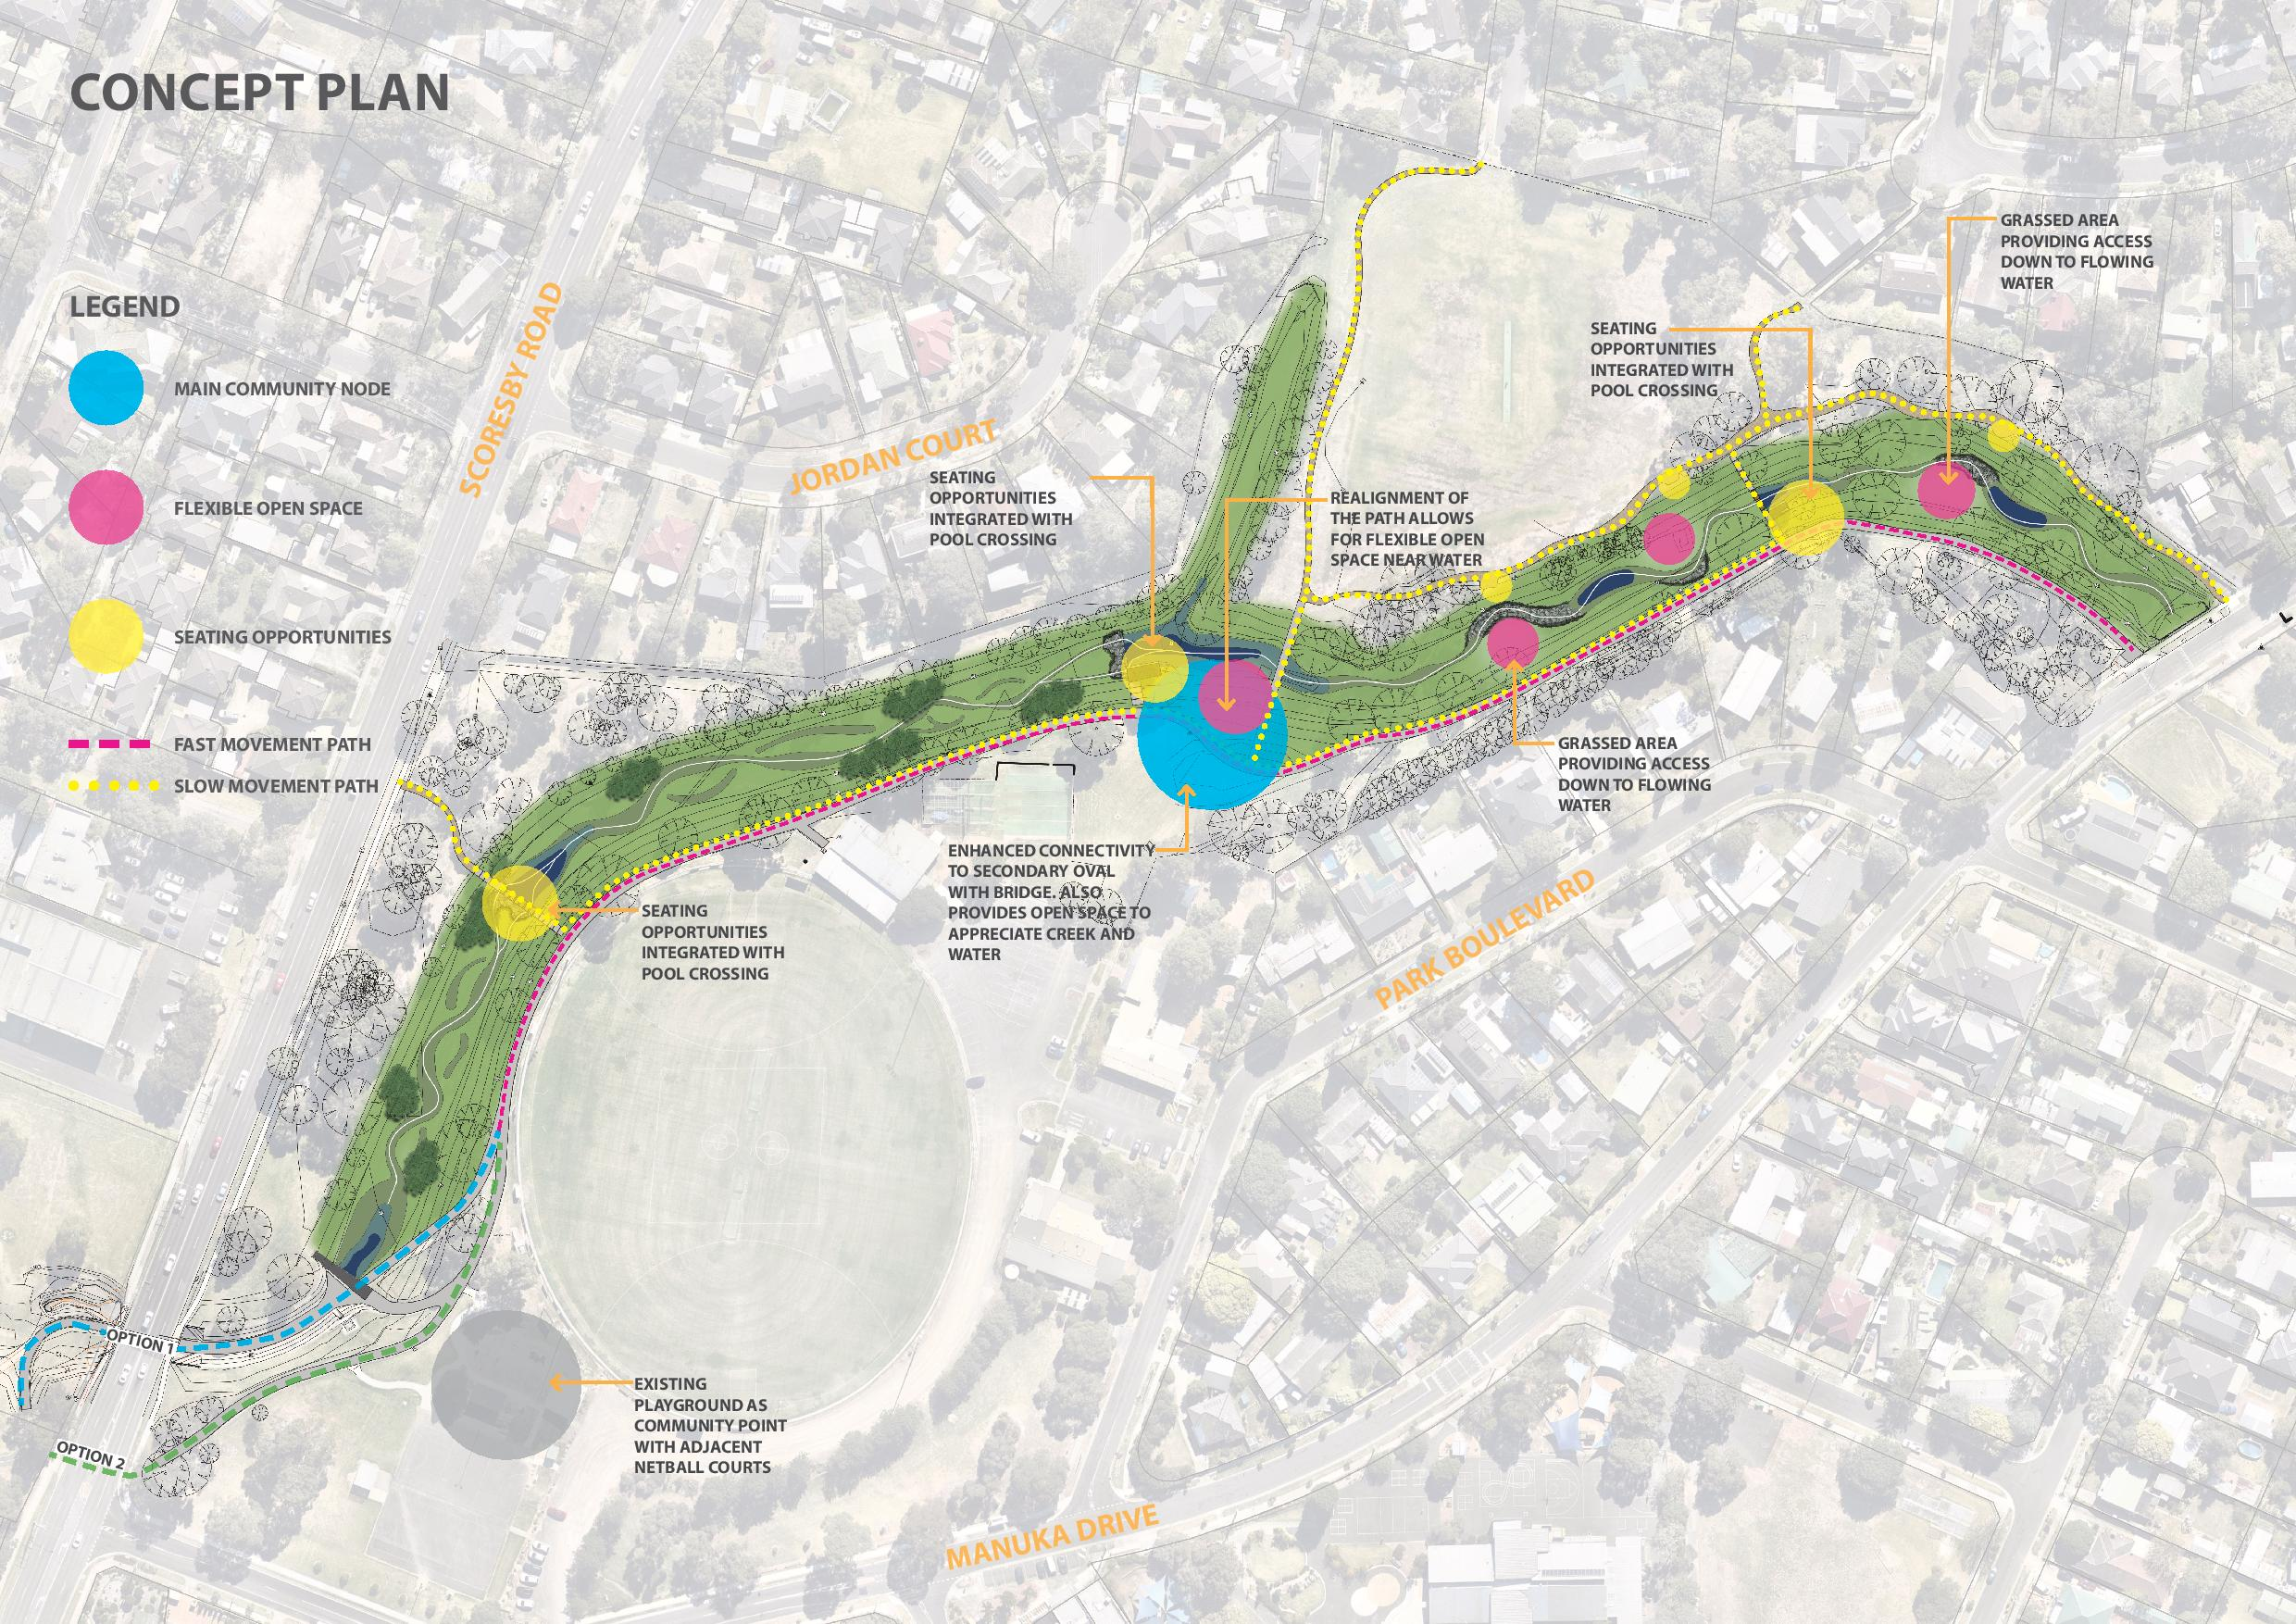 Concept map and plan of proposed new design of blind creek